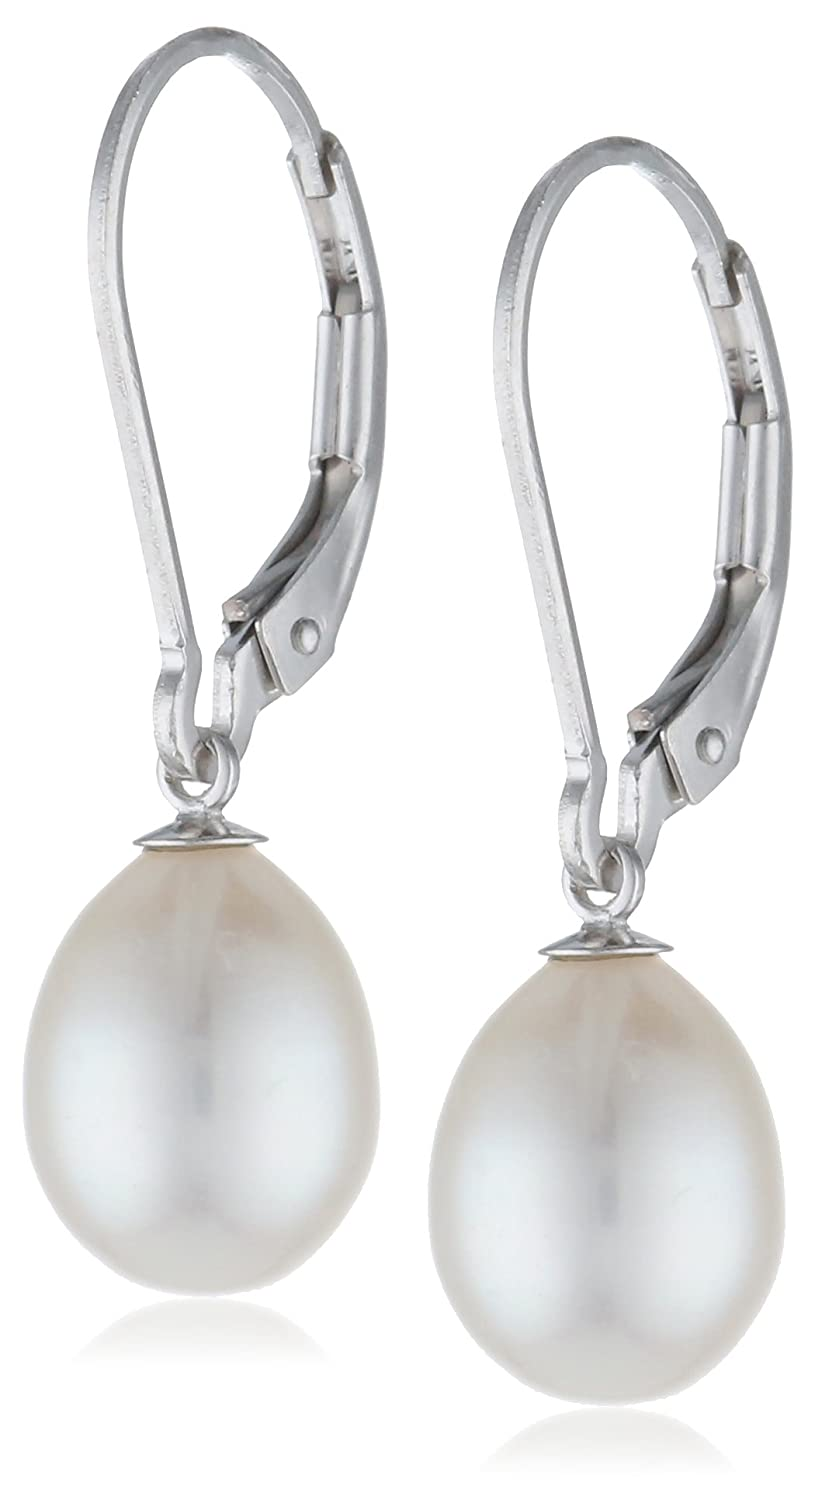 6846877ac0cfa1 Bella Pearl Earrings with Three Pairs of Interchangeable Pearls (7-7.5 mm)  best